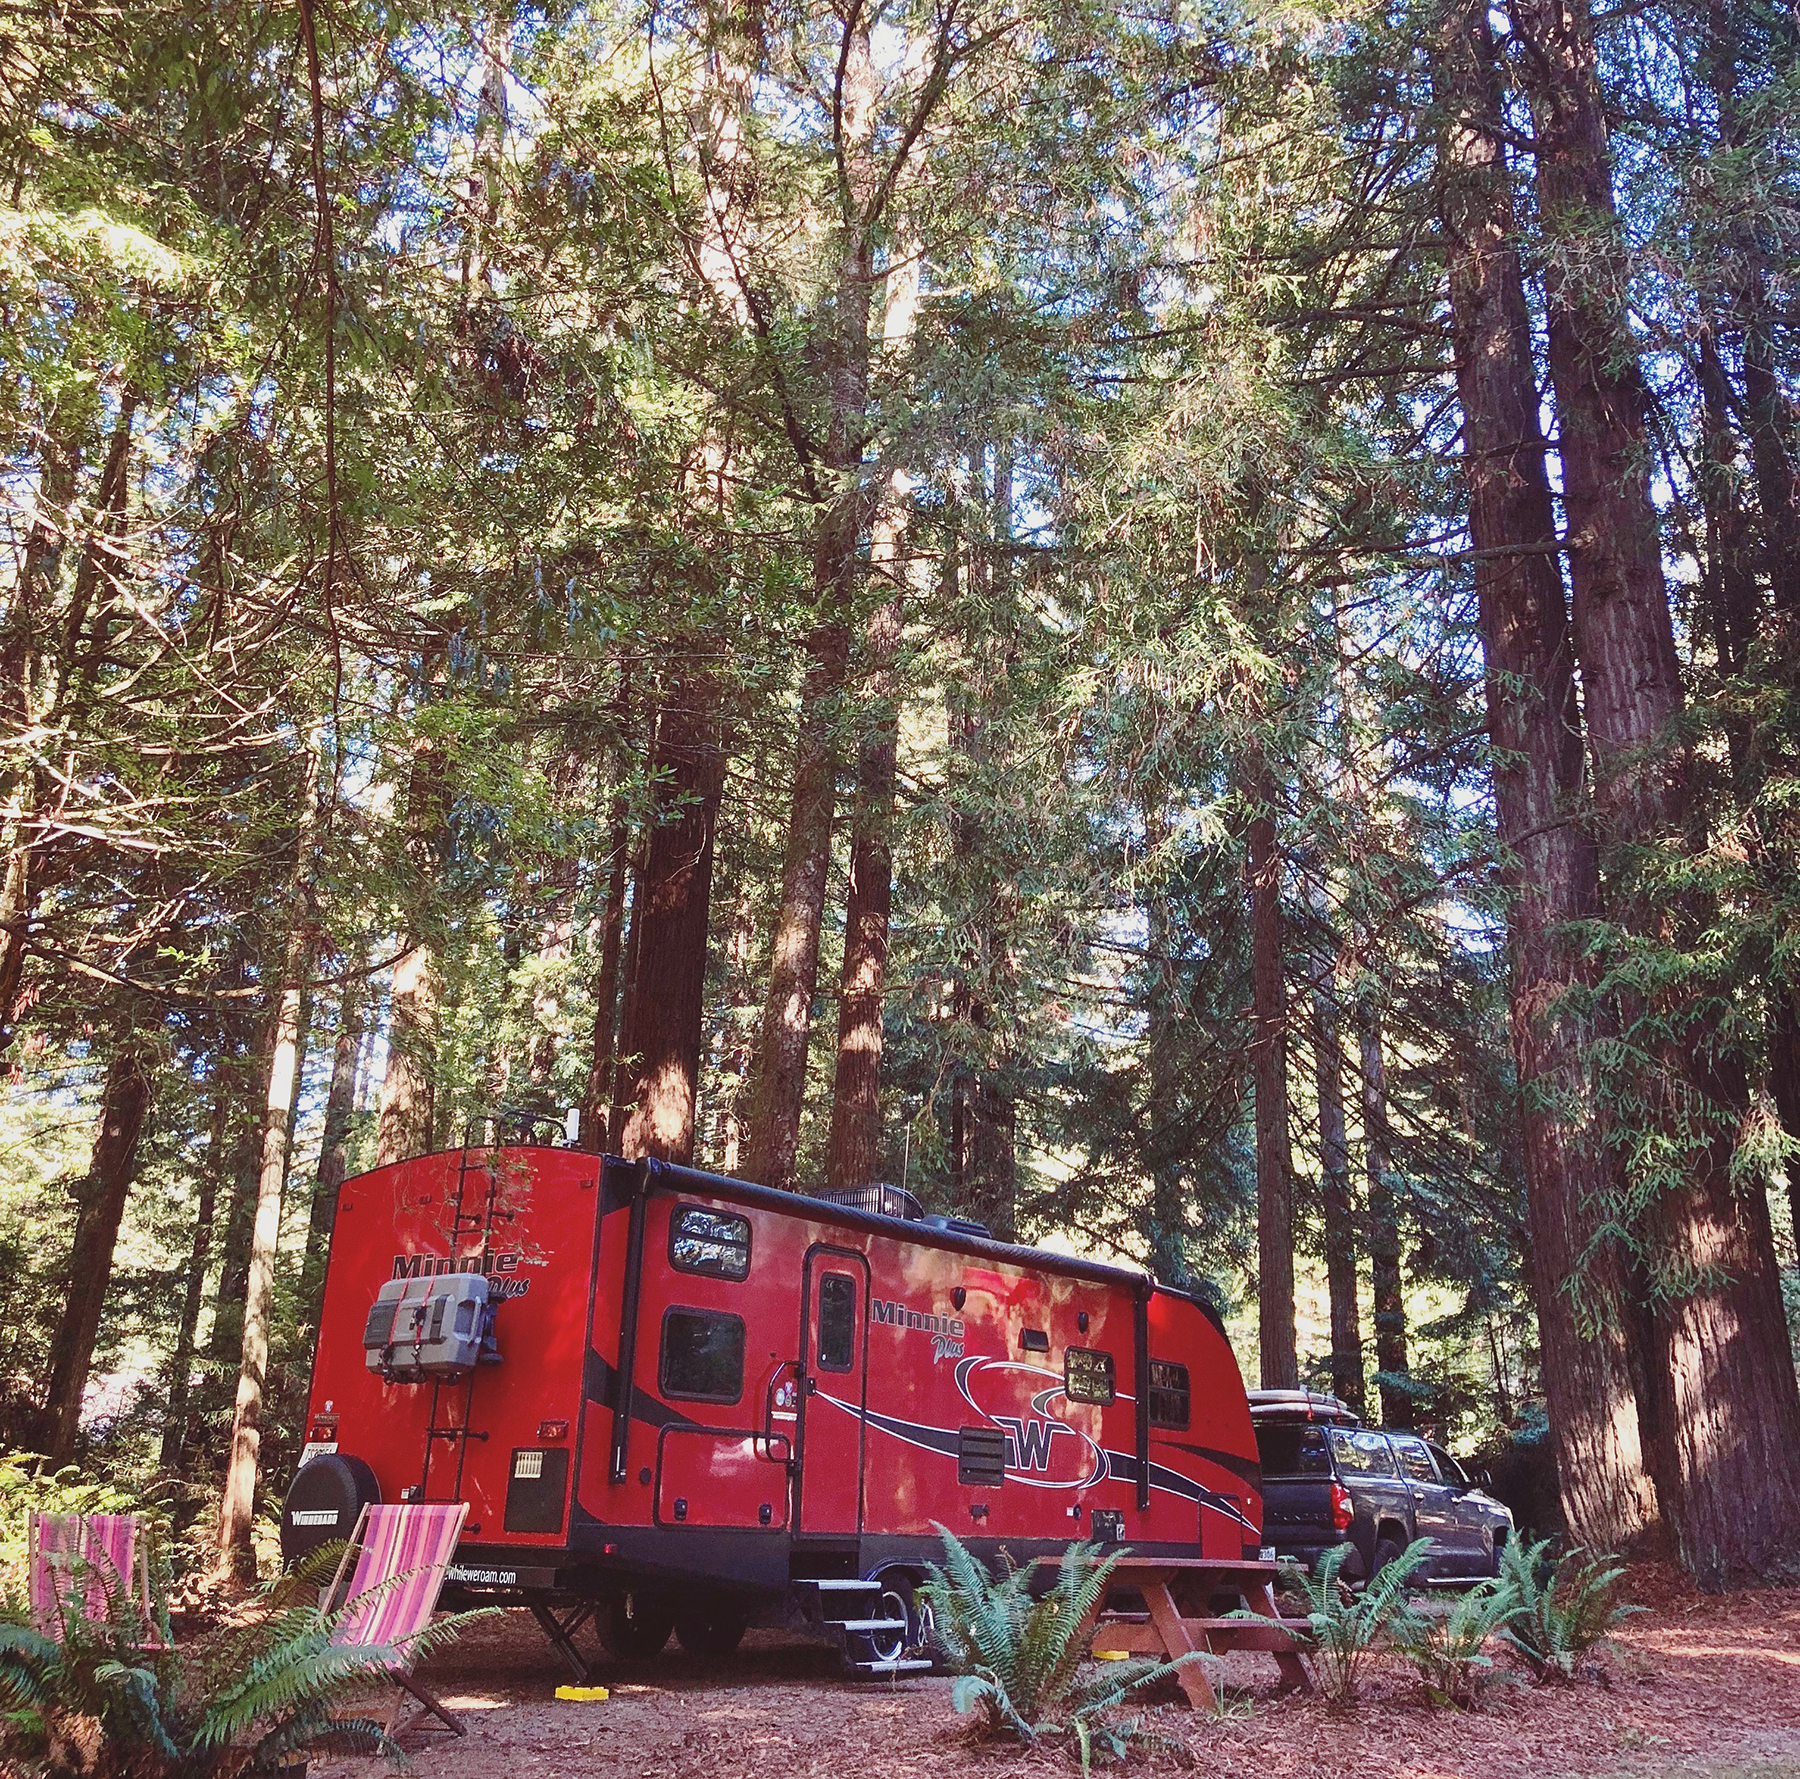 Red trailer camping among redwood trees.